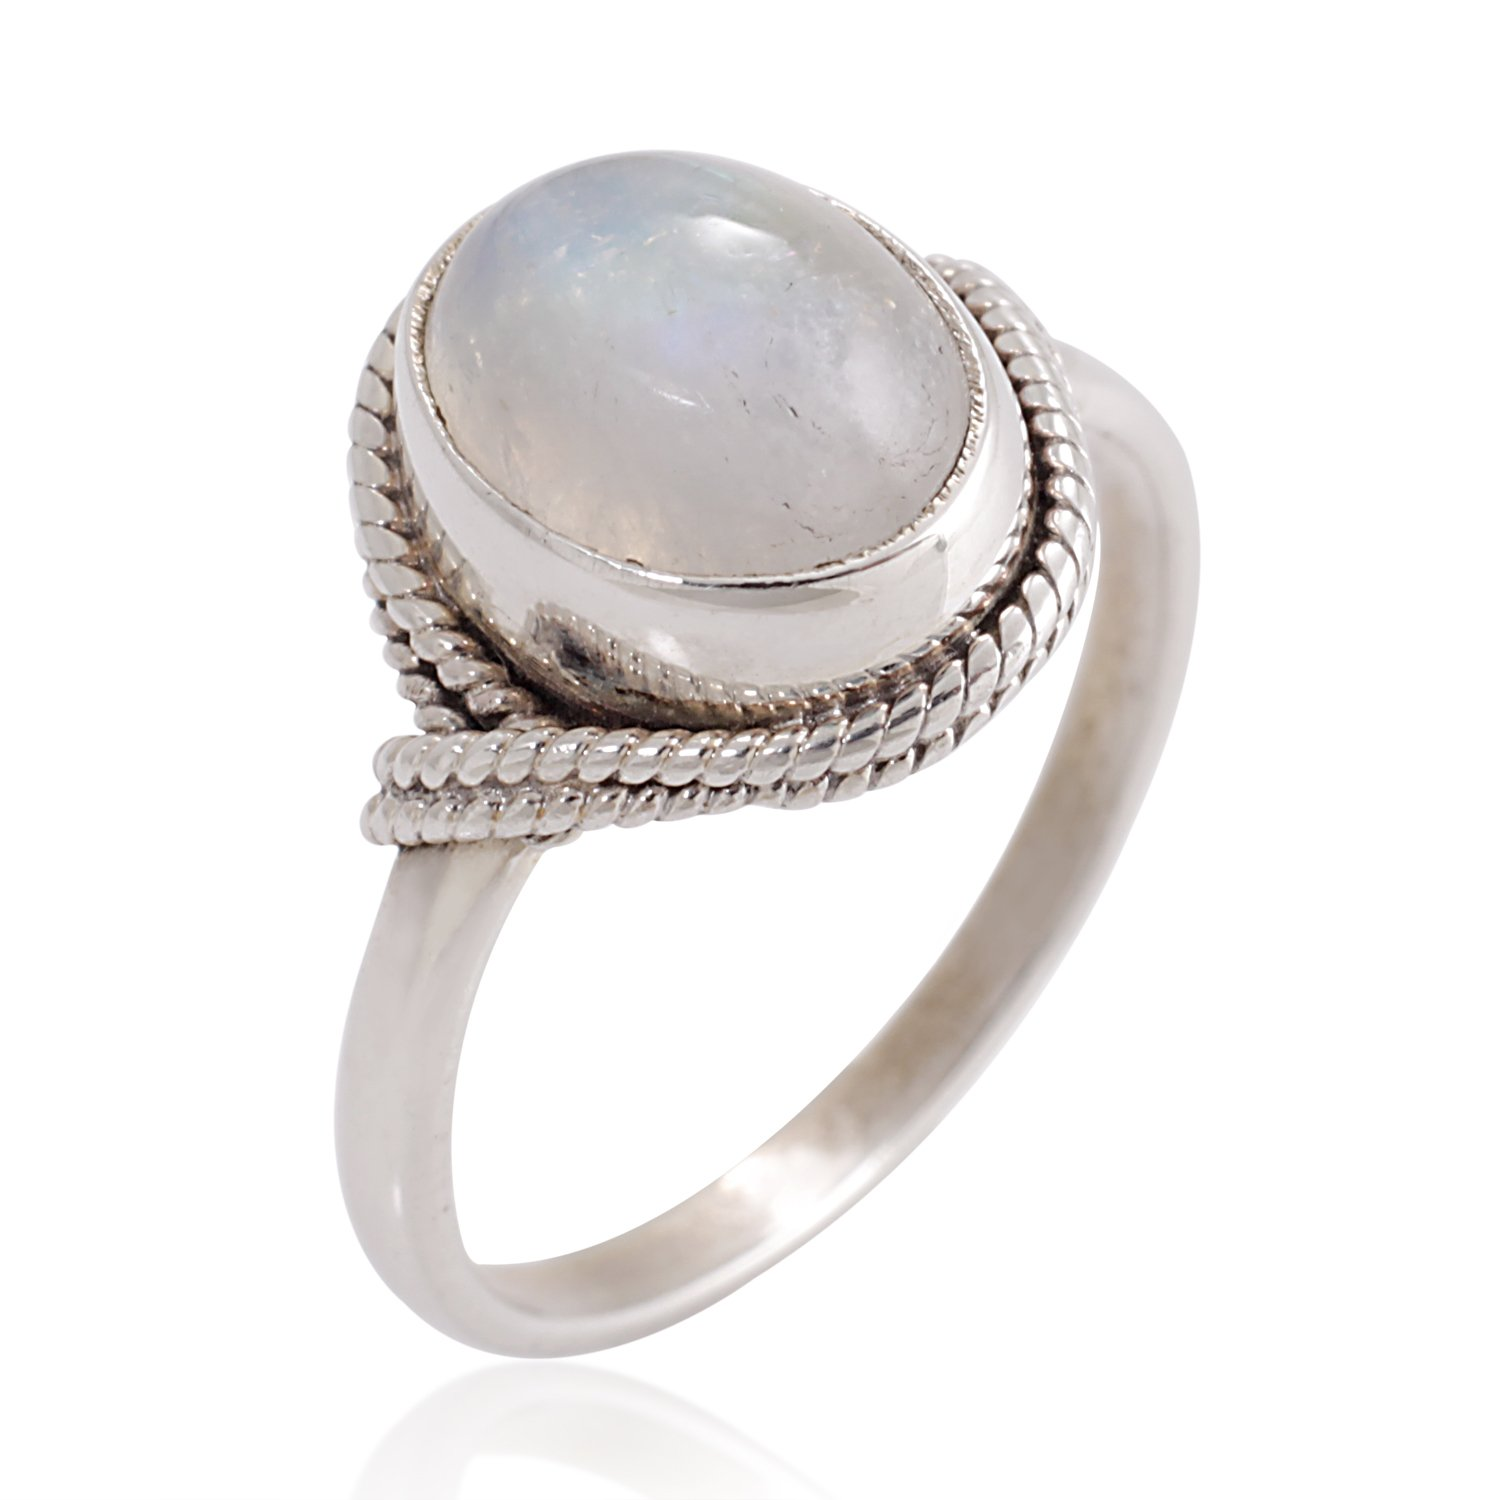 Chuvora 925 Sterling Silver White Moonstone Gemstone Oval Rope Edge Vintage Band Ring Size 7